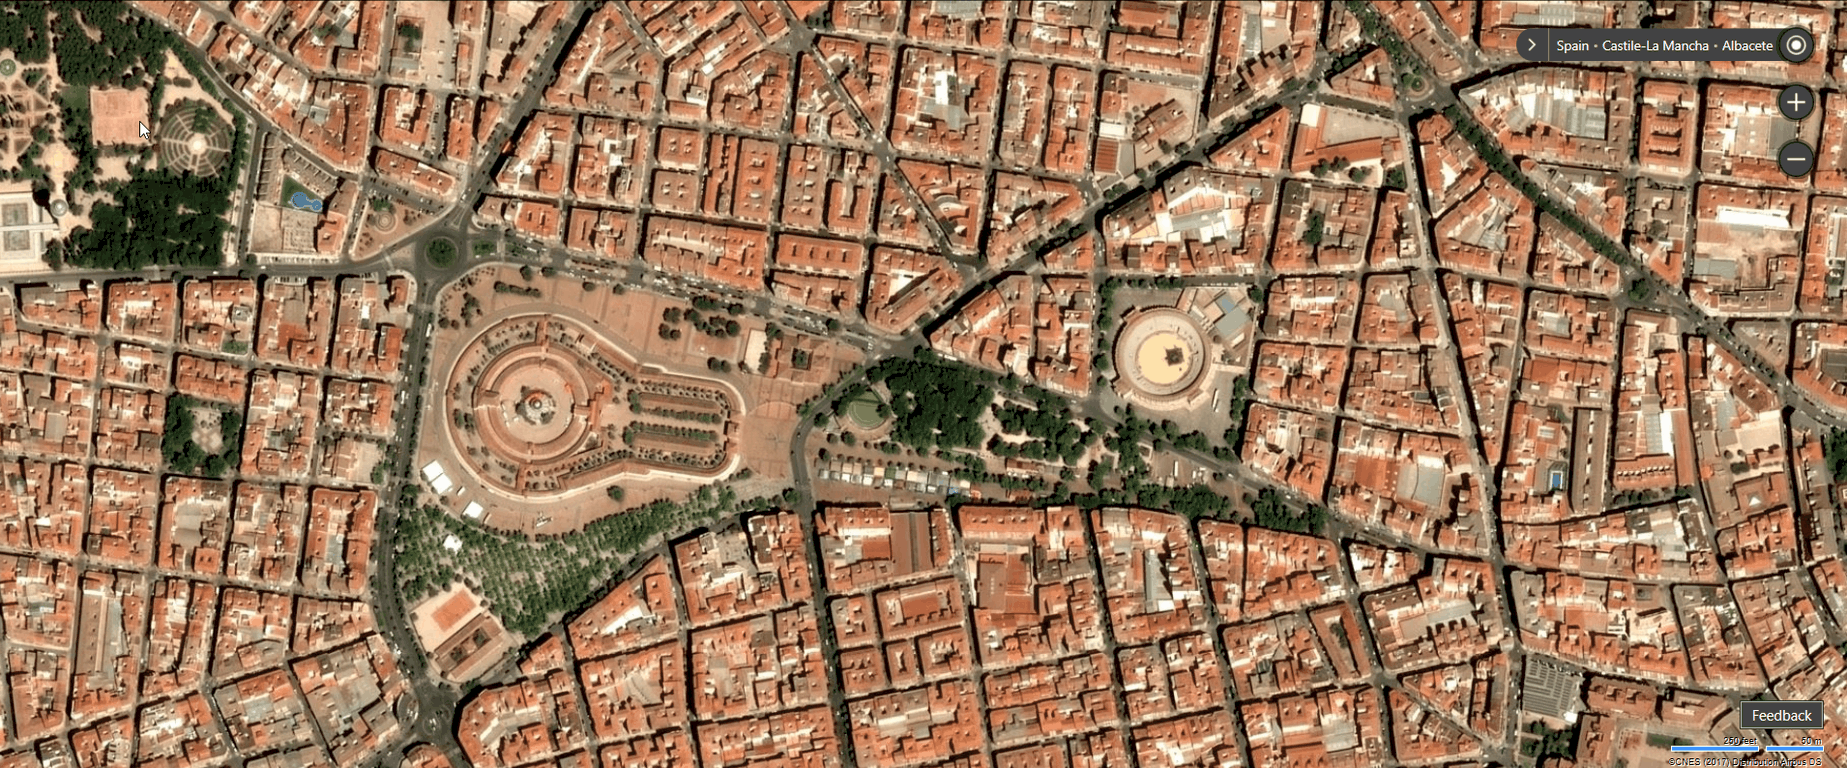 Bing Maps adds aerial imagery for 41 cities in Spain OnMSFT.com April 6, 2017